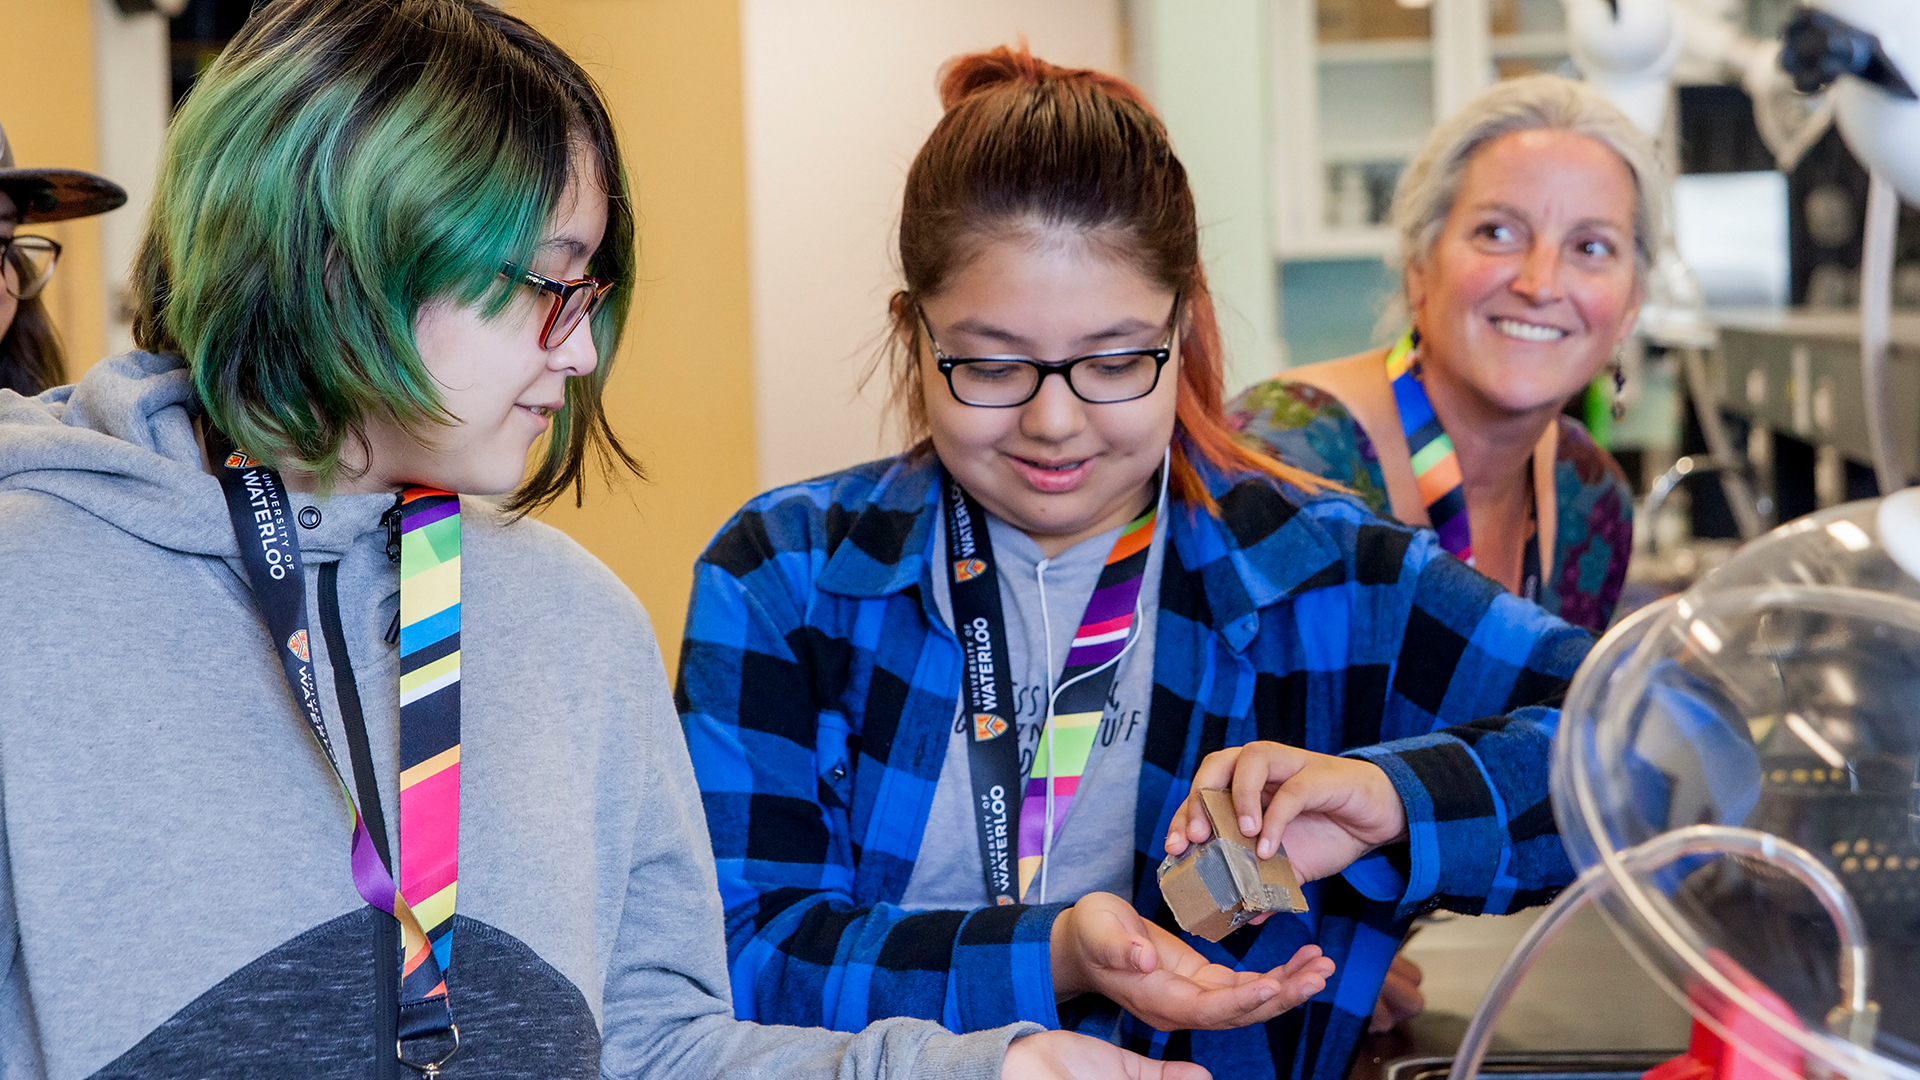 Young girls discovering STEM